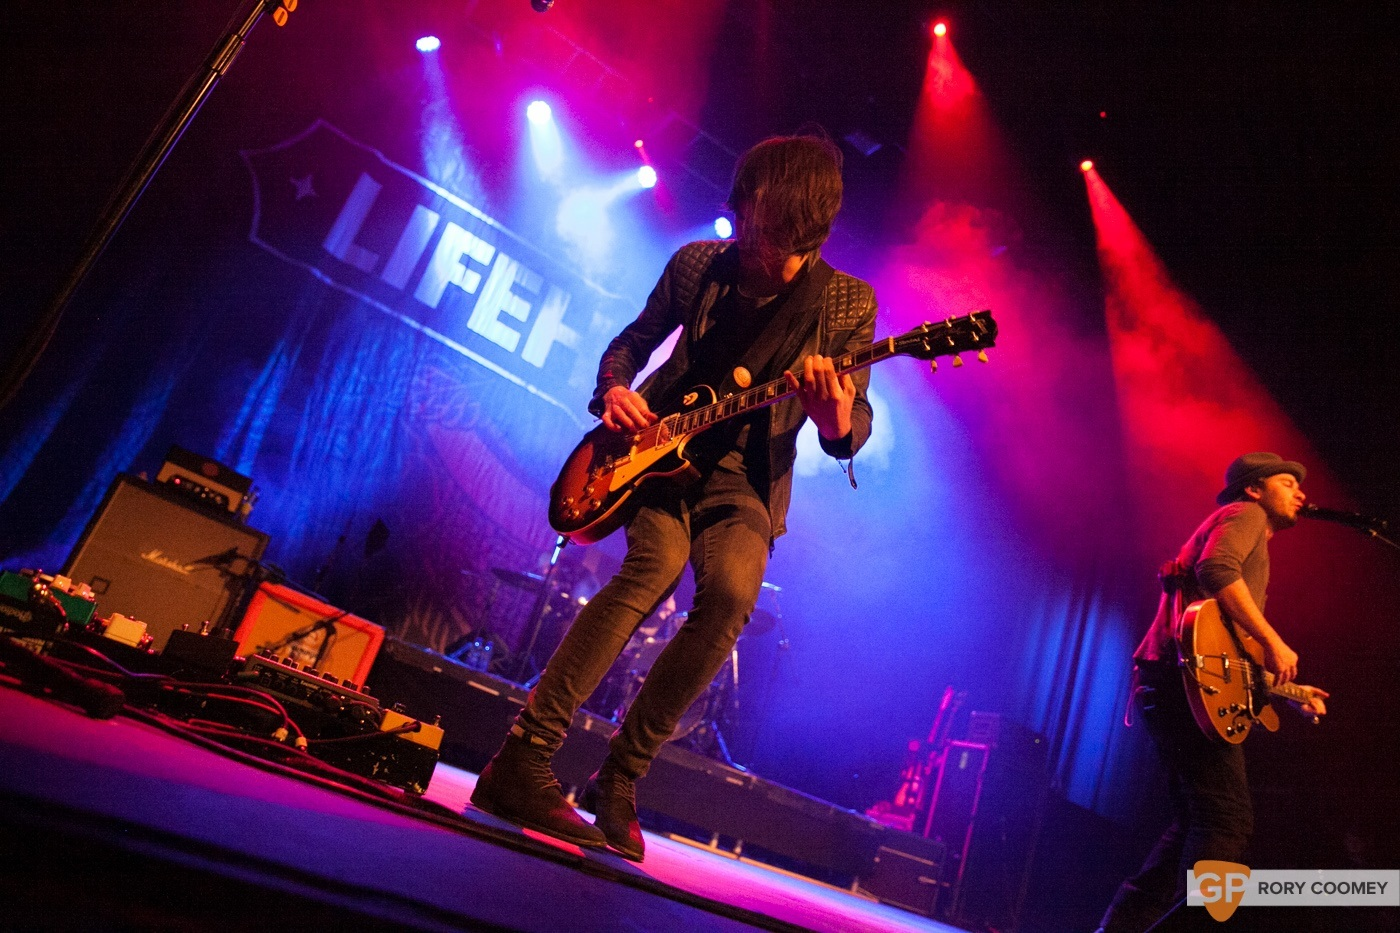 Lifehouse at Olympia Theatre by Rory Coomey